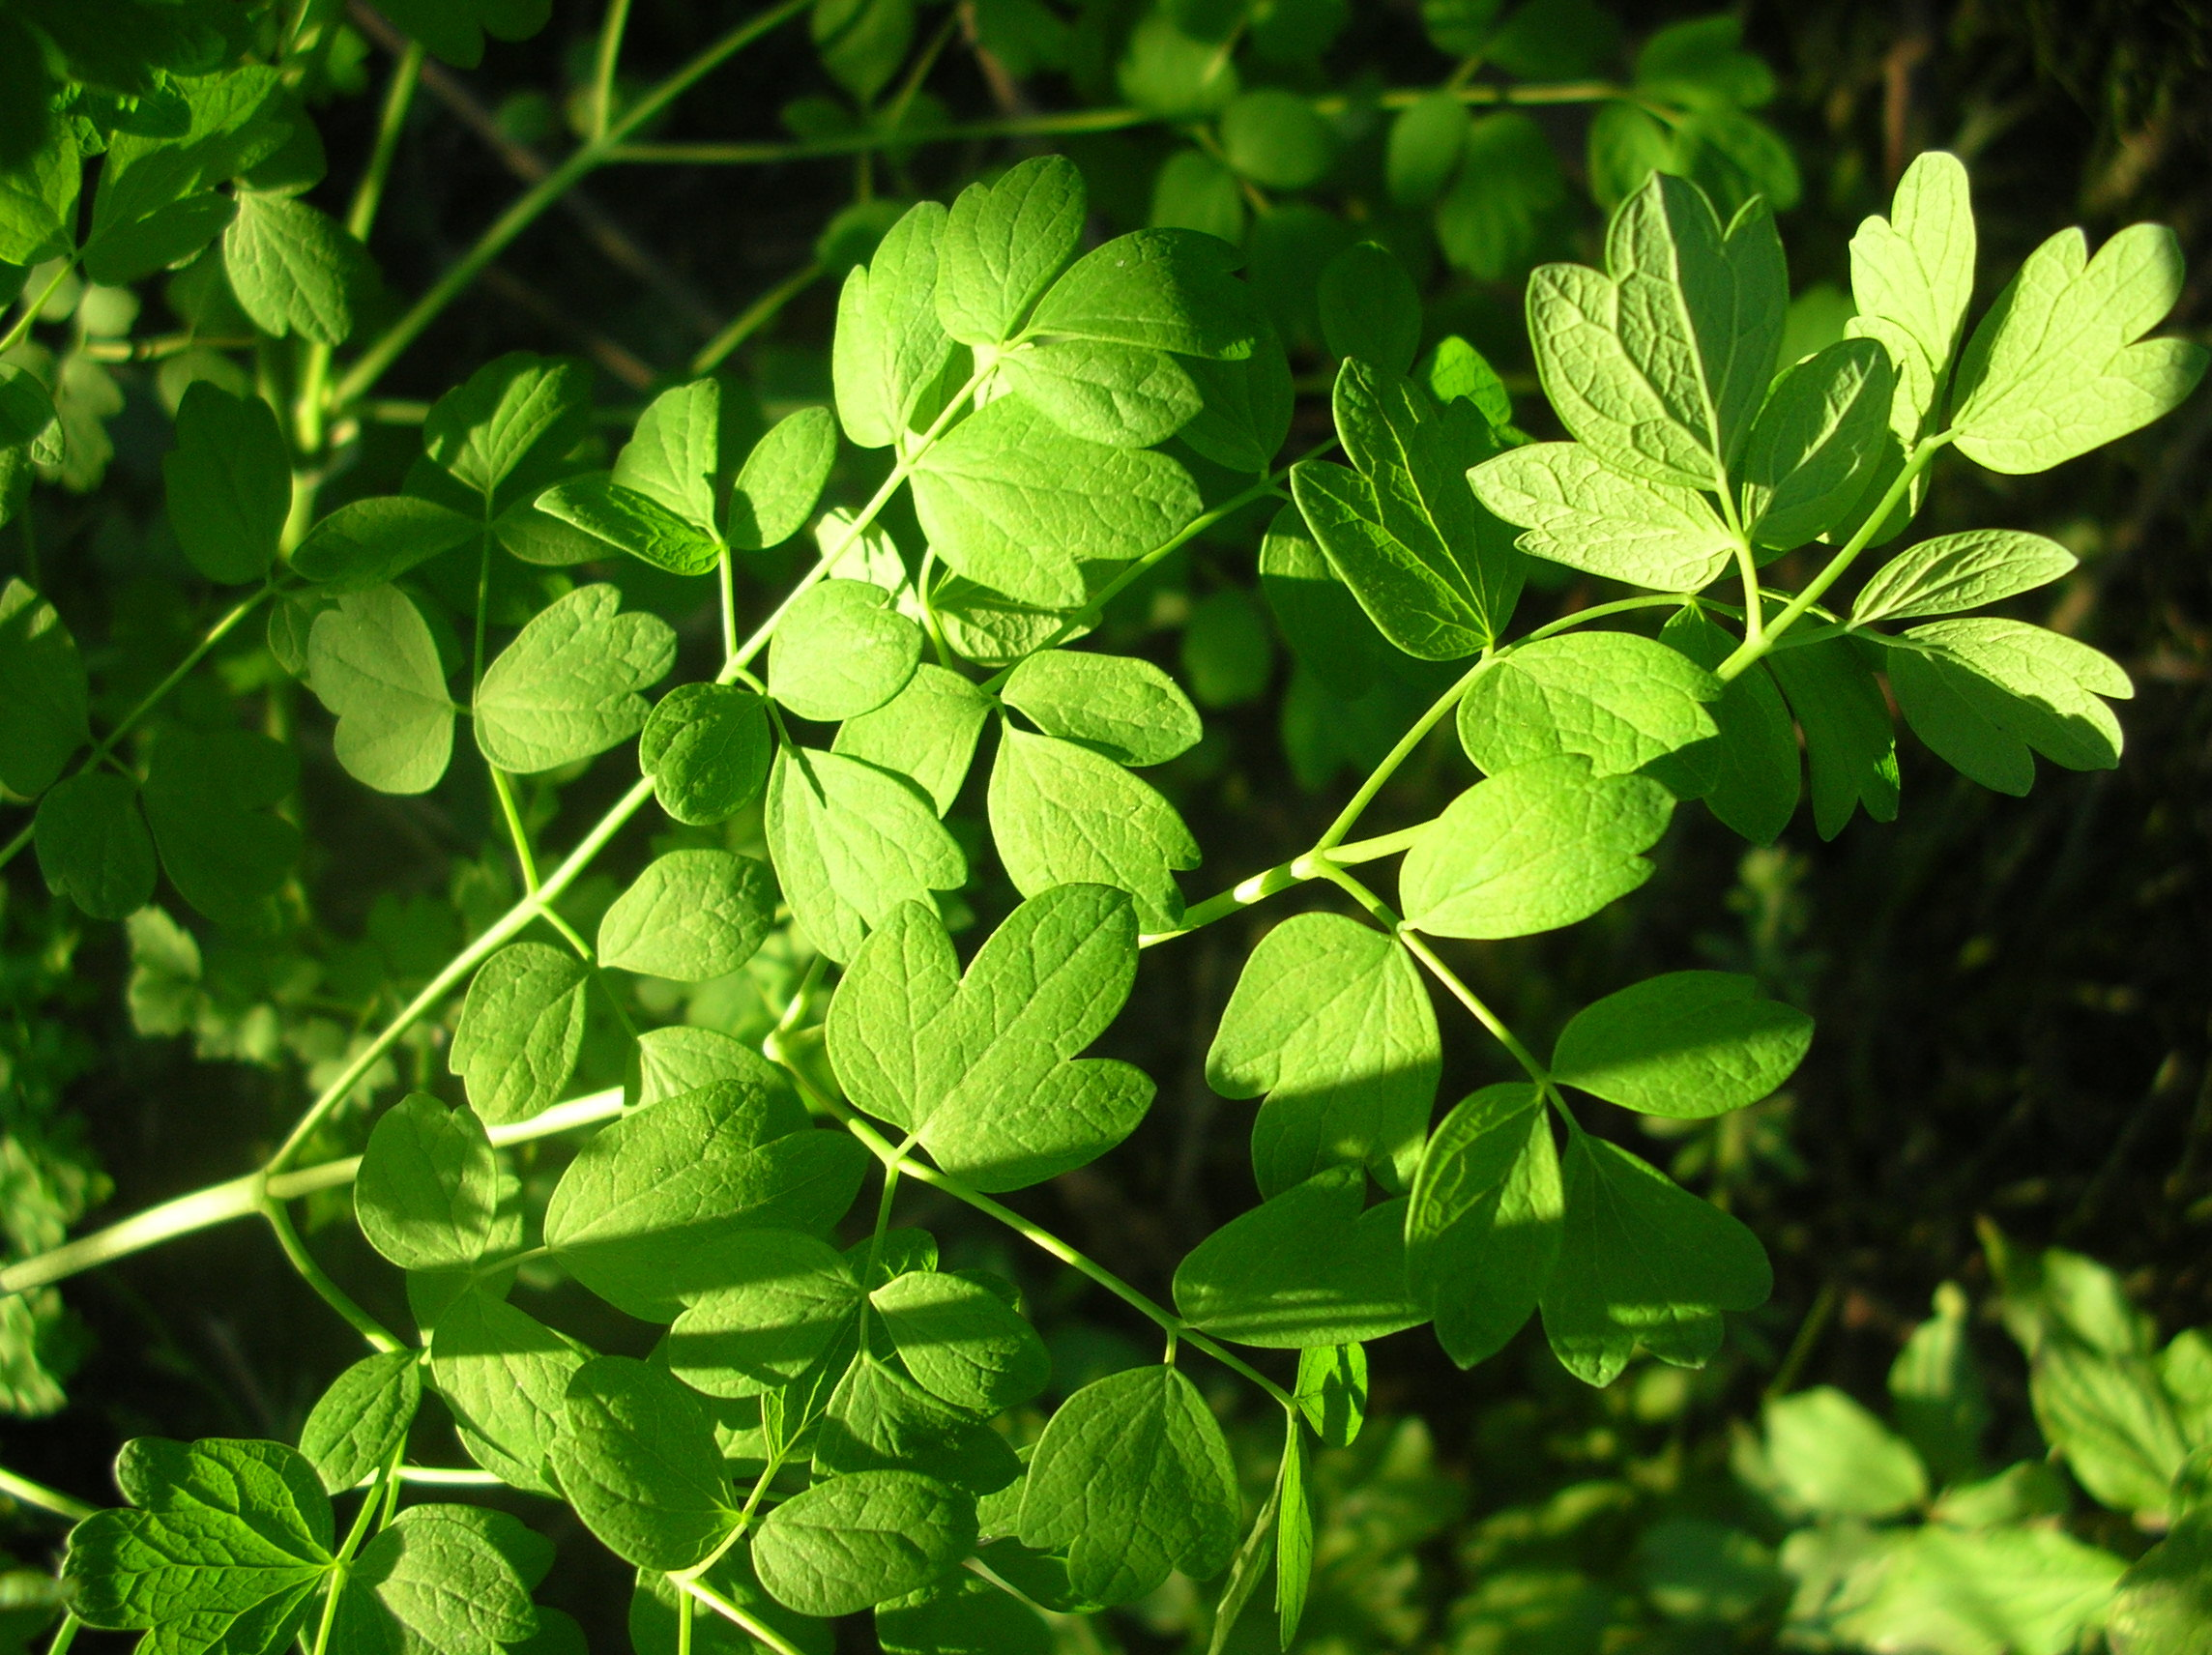 Image of lesser meadow-rue